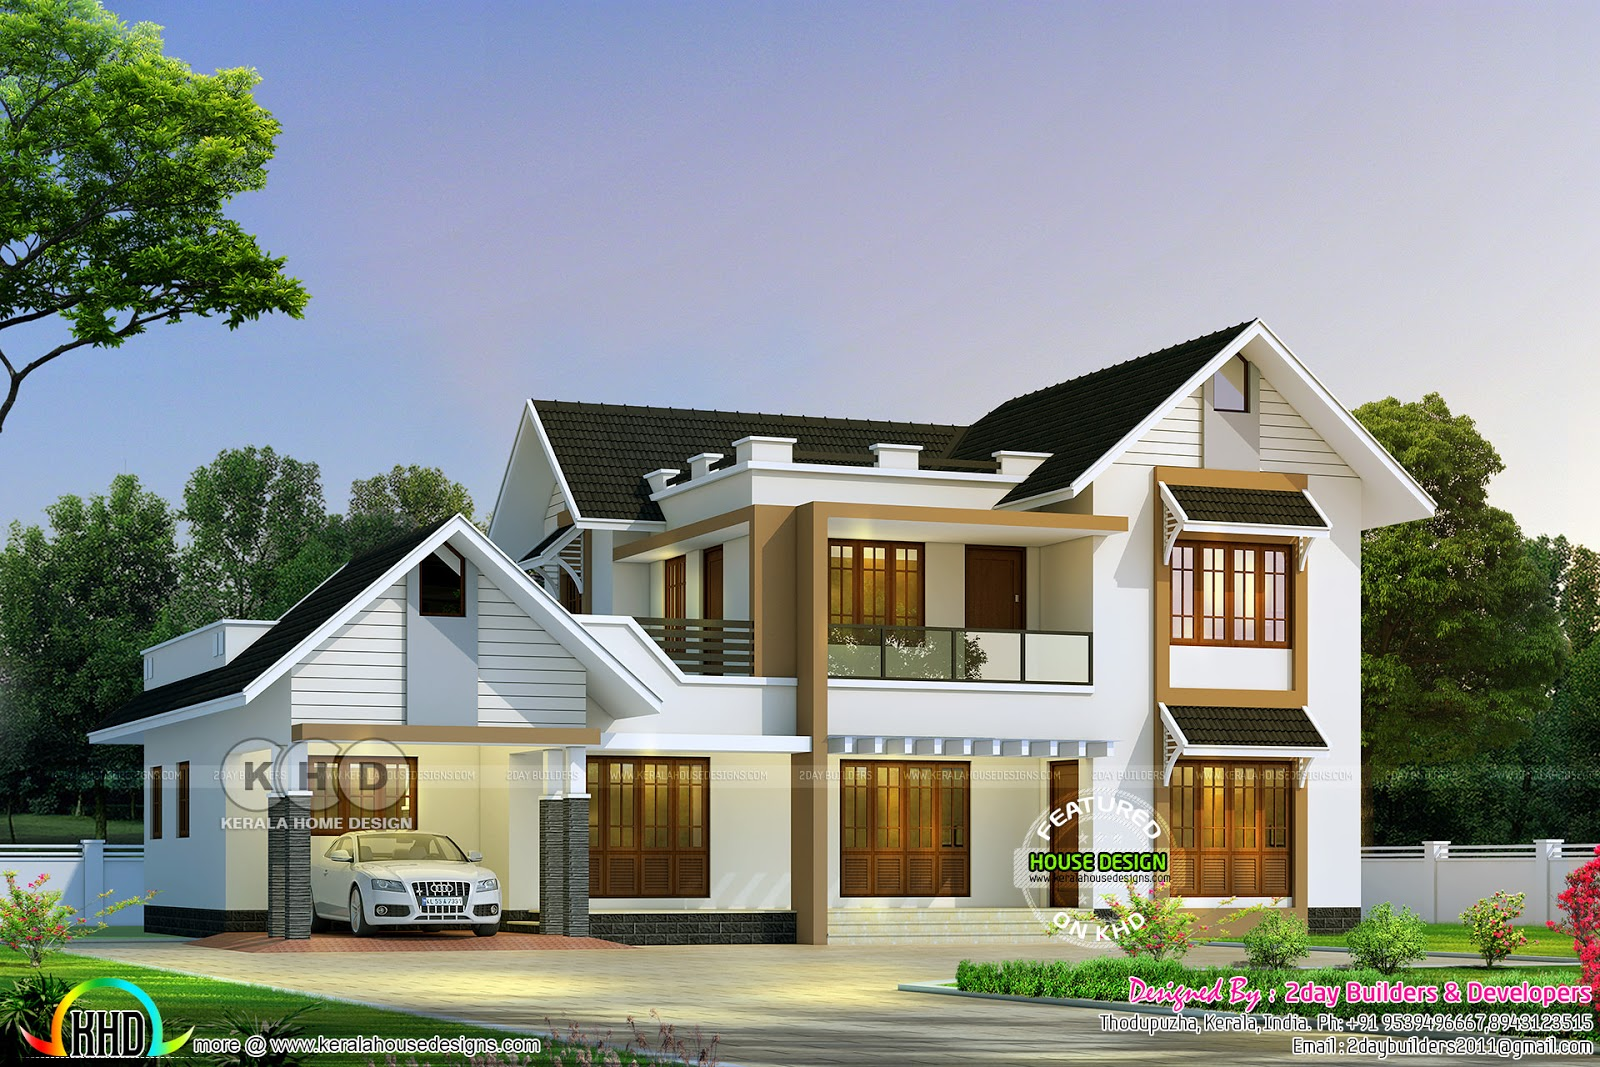 2017 kerala home design and floor plans for Contemporary homes images